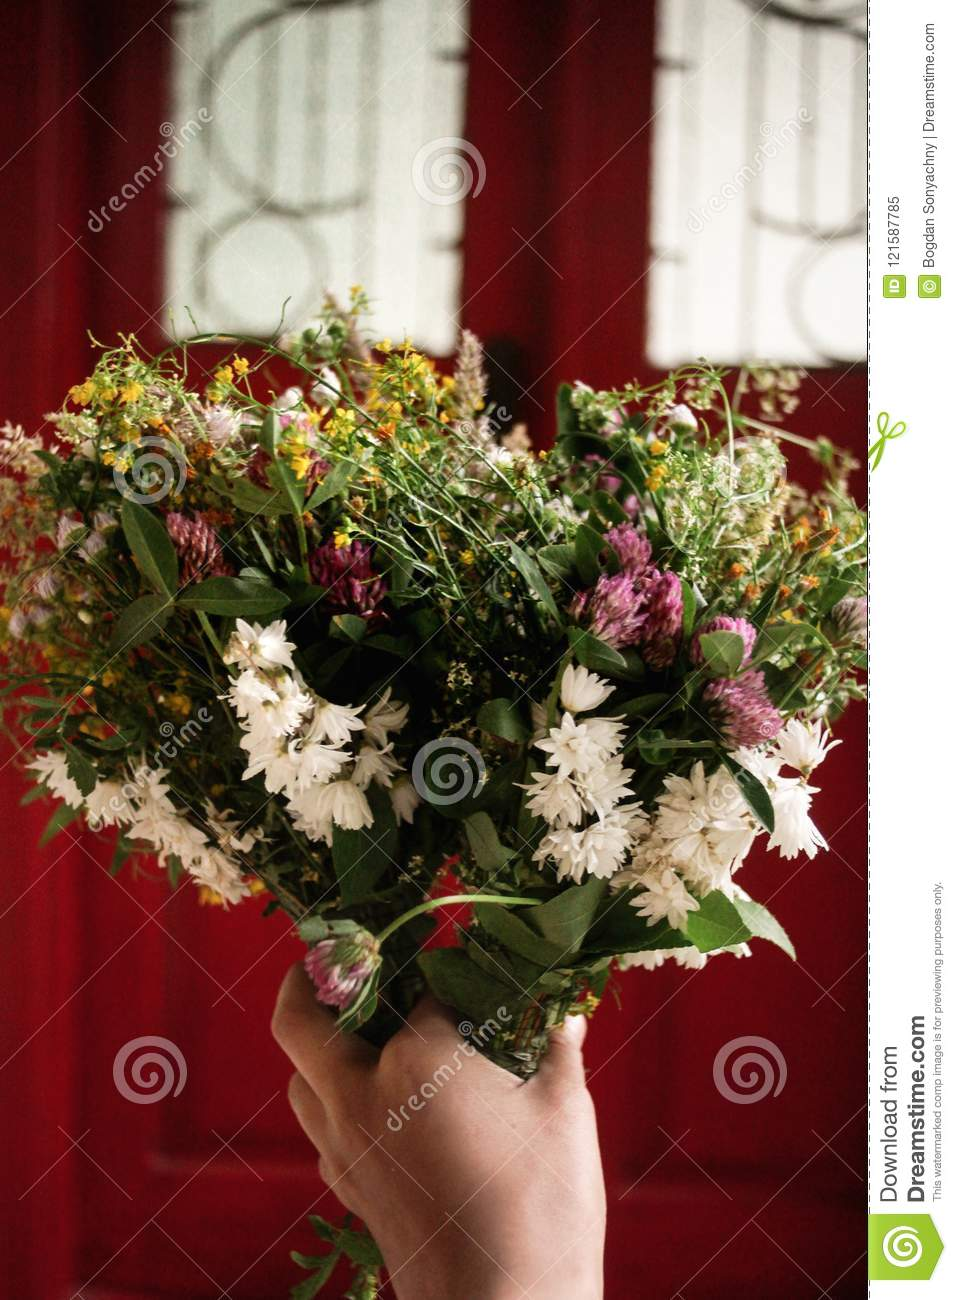 Beautiful White Flowers Bouquet In Hand At Rustic Wooden Red Do